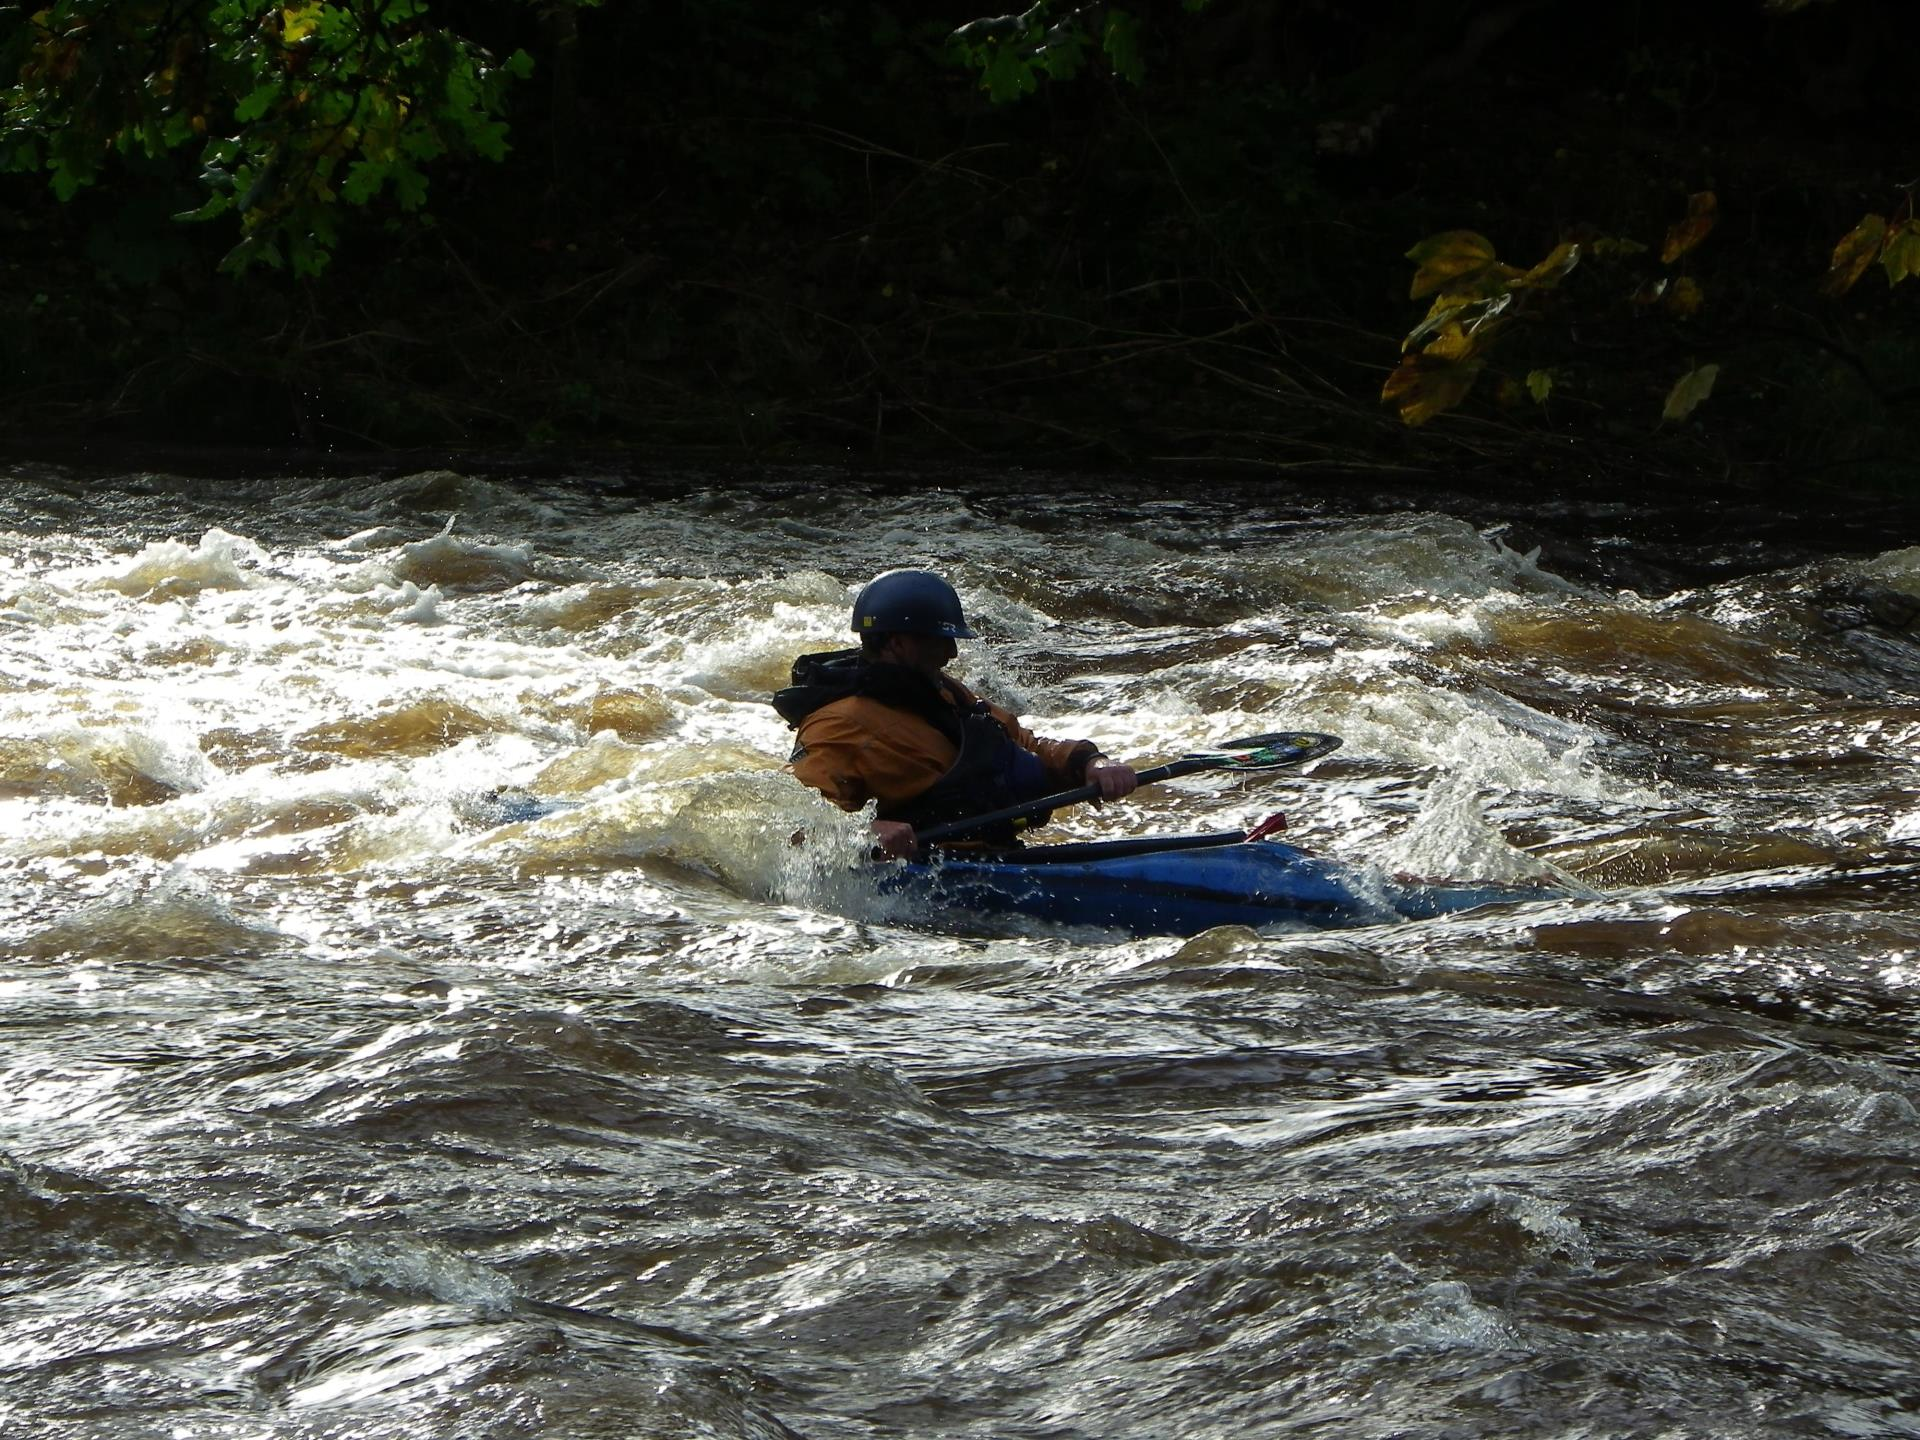 Kayaking on the Usk